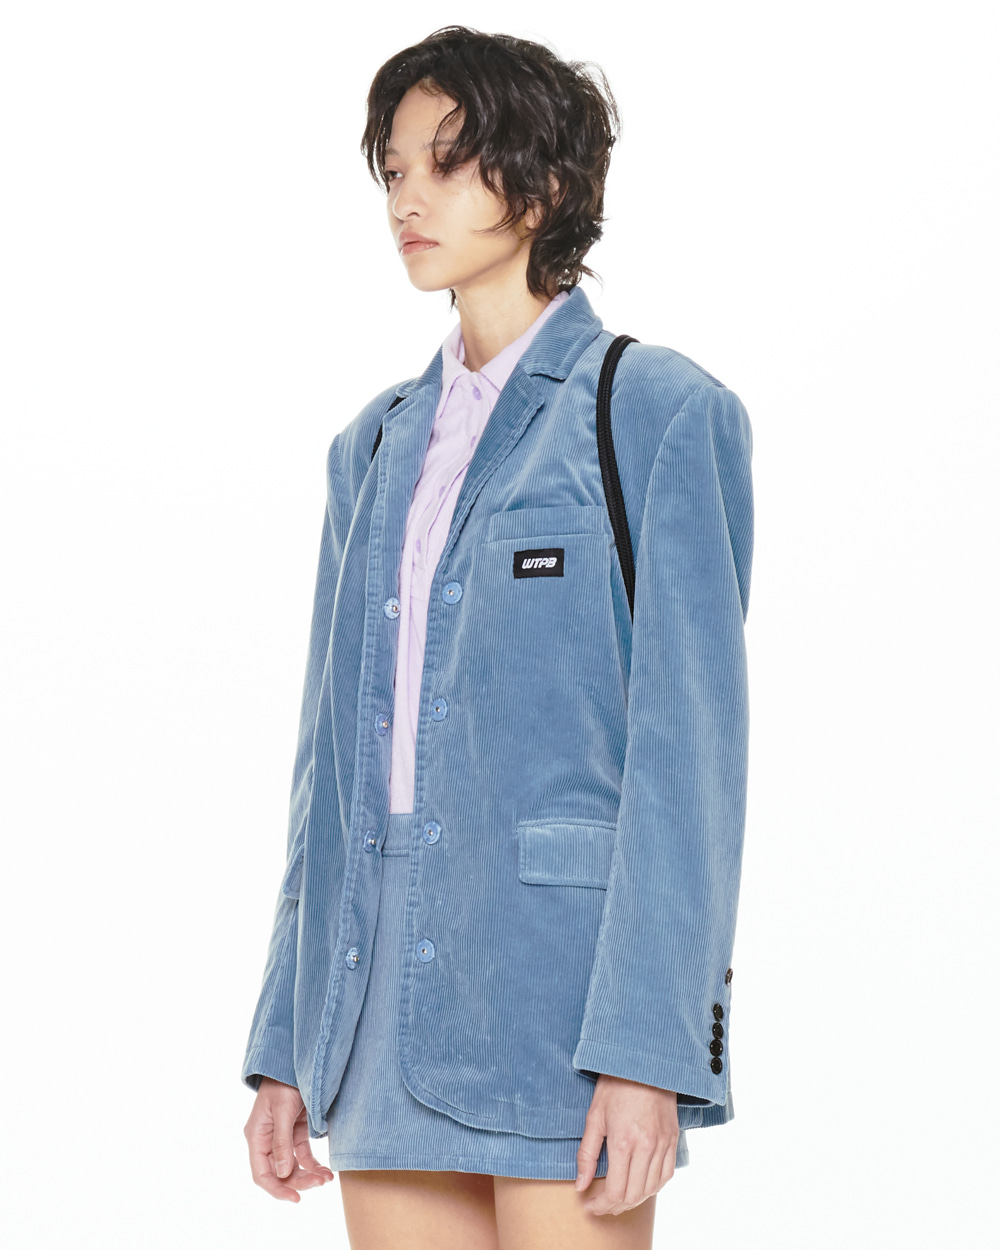 FW20 HIDDEN BUTTON CORDUROY BLUE JACKET